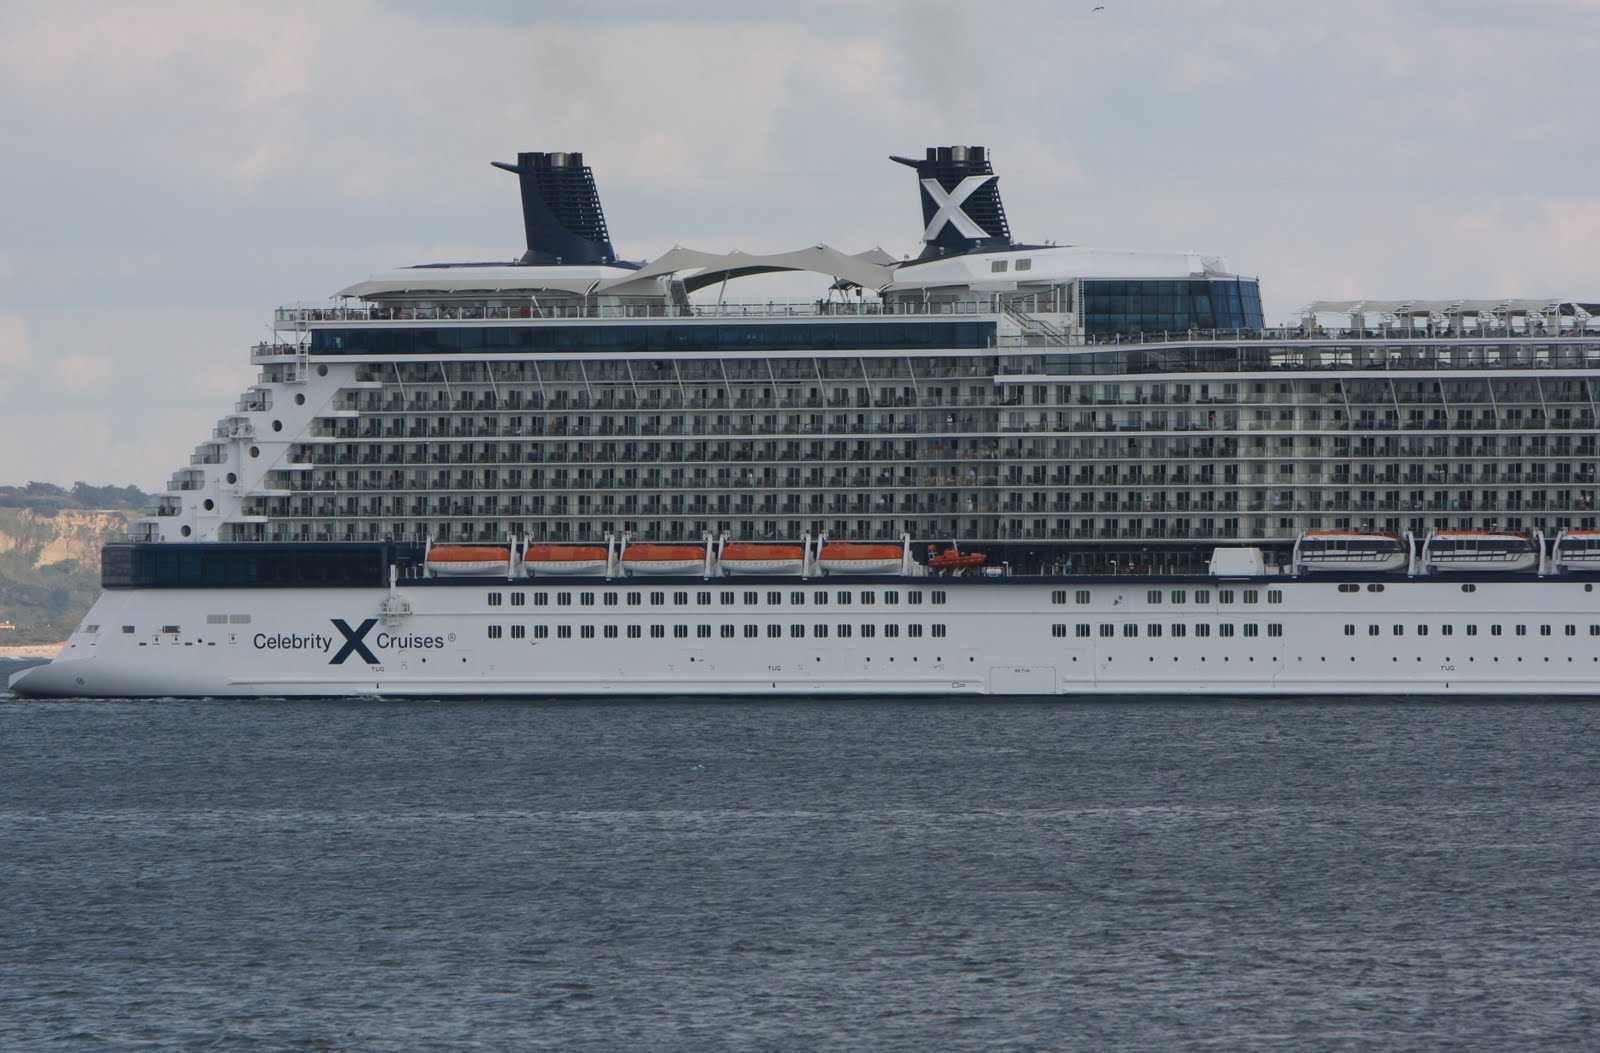 Ships Photo Gallery CELEBRITY ECLIPSE Celebrity Cruises